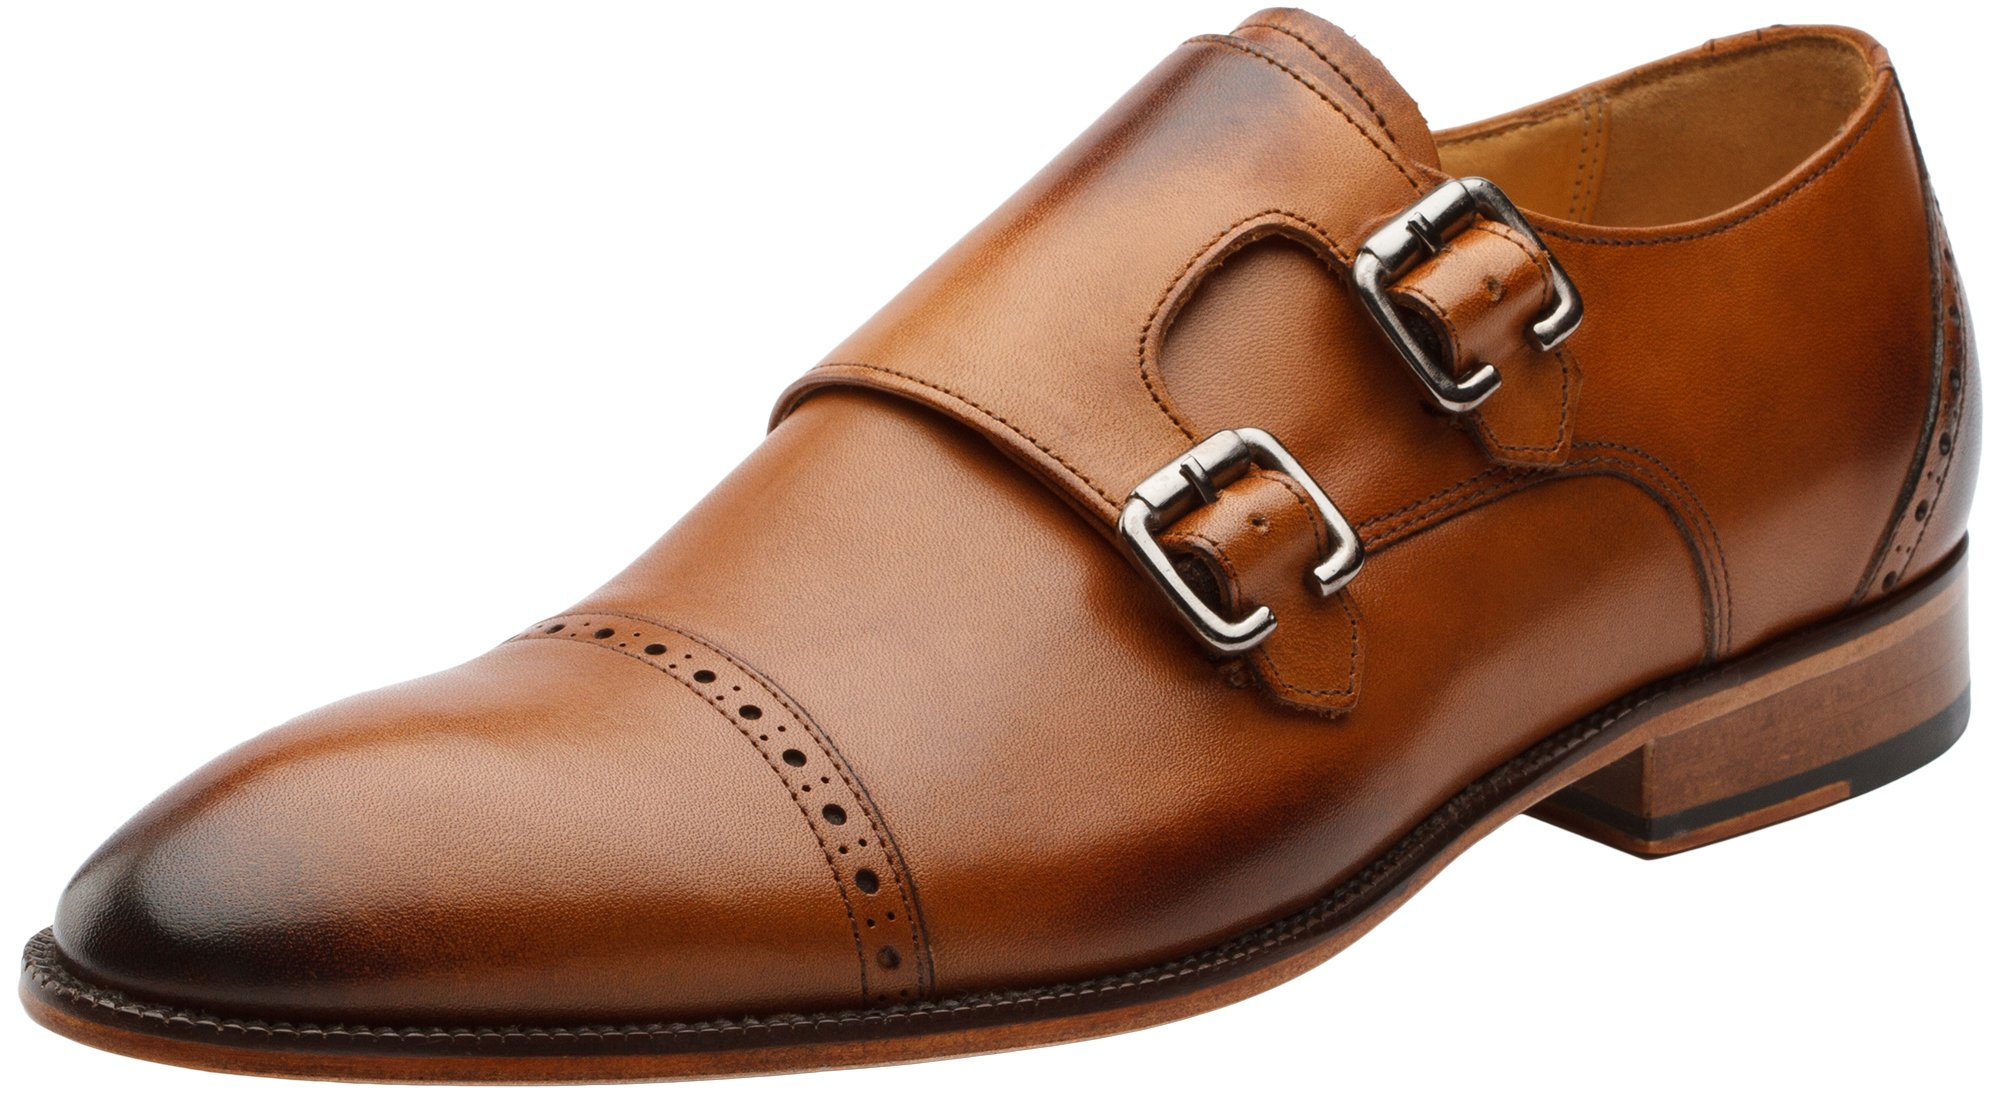 13f3501e680e Galleon - 3DM Lifestyle Mens Toe Cap Double Monk Strap Modern Classic  Leather Lined Perforated Dress Shoes